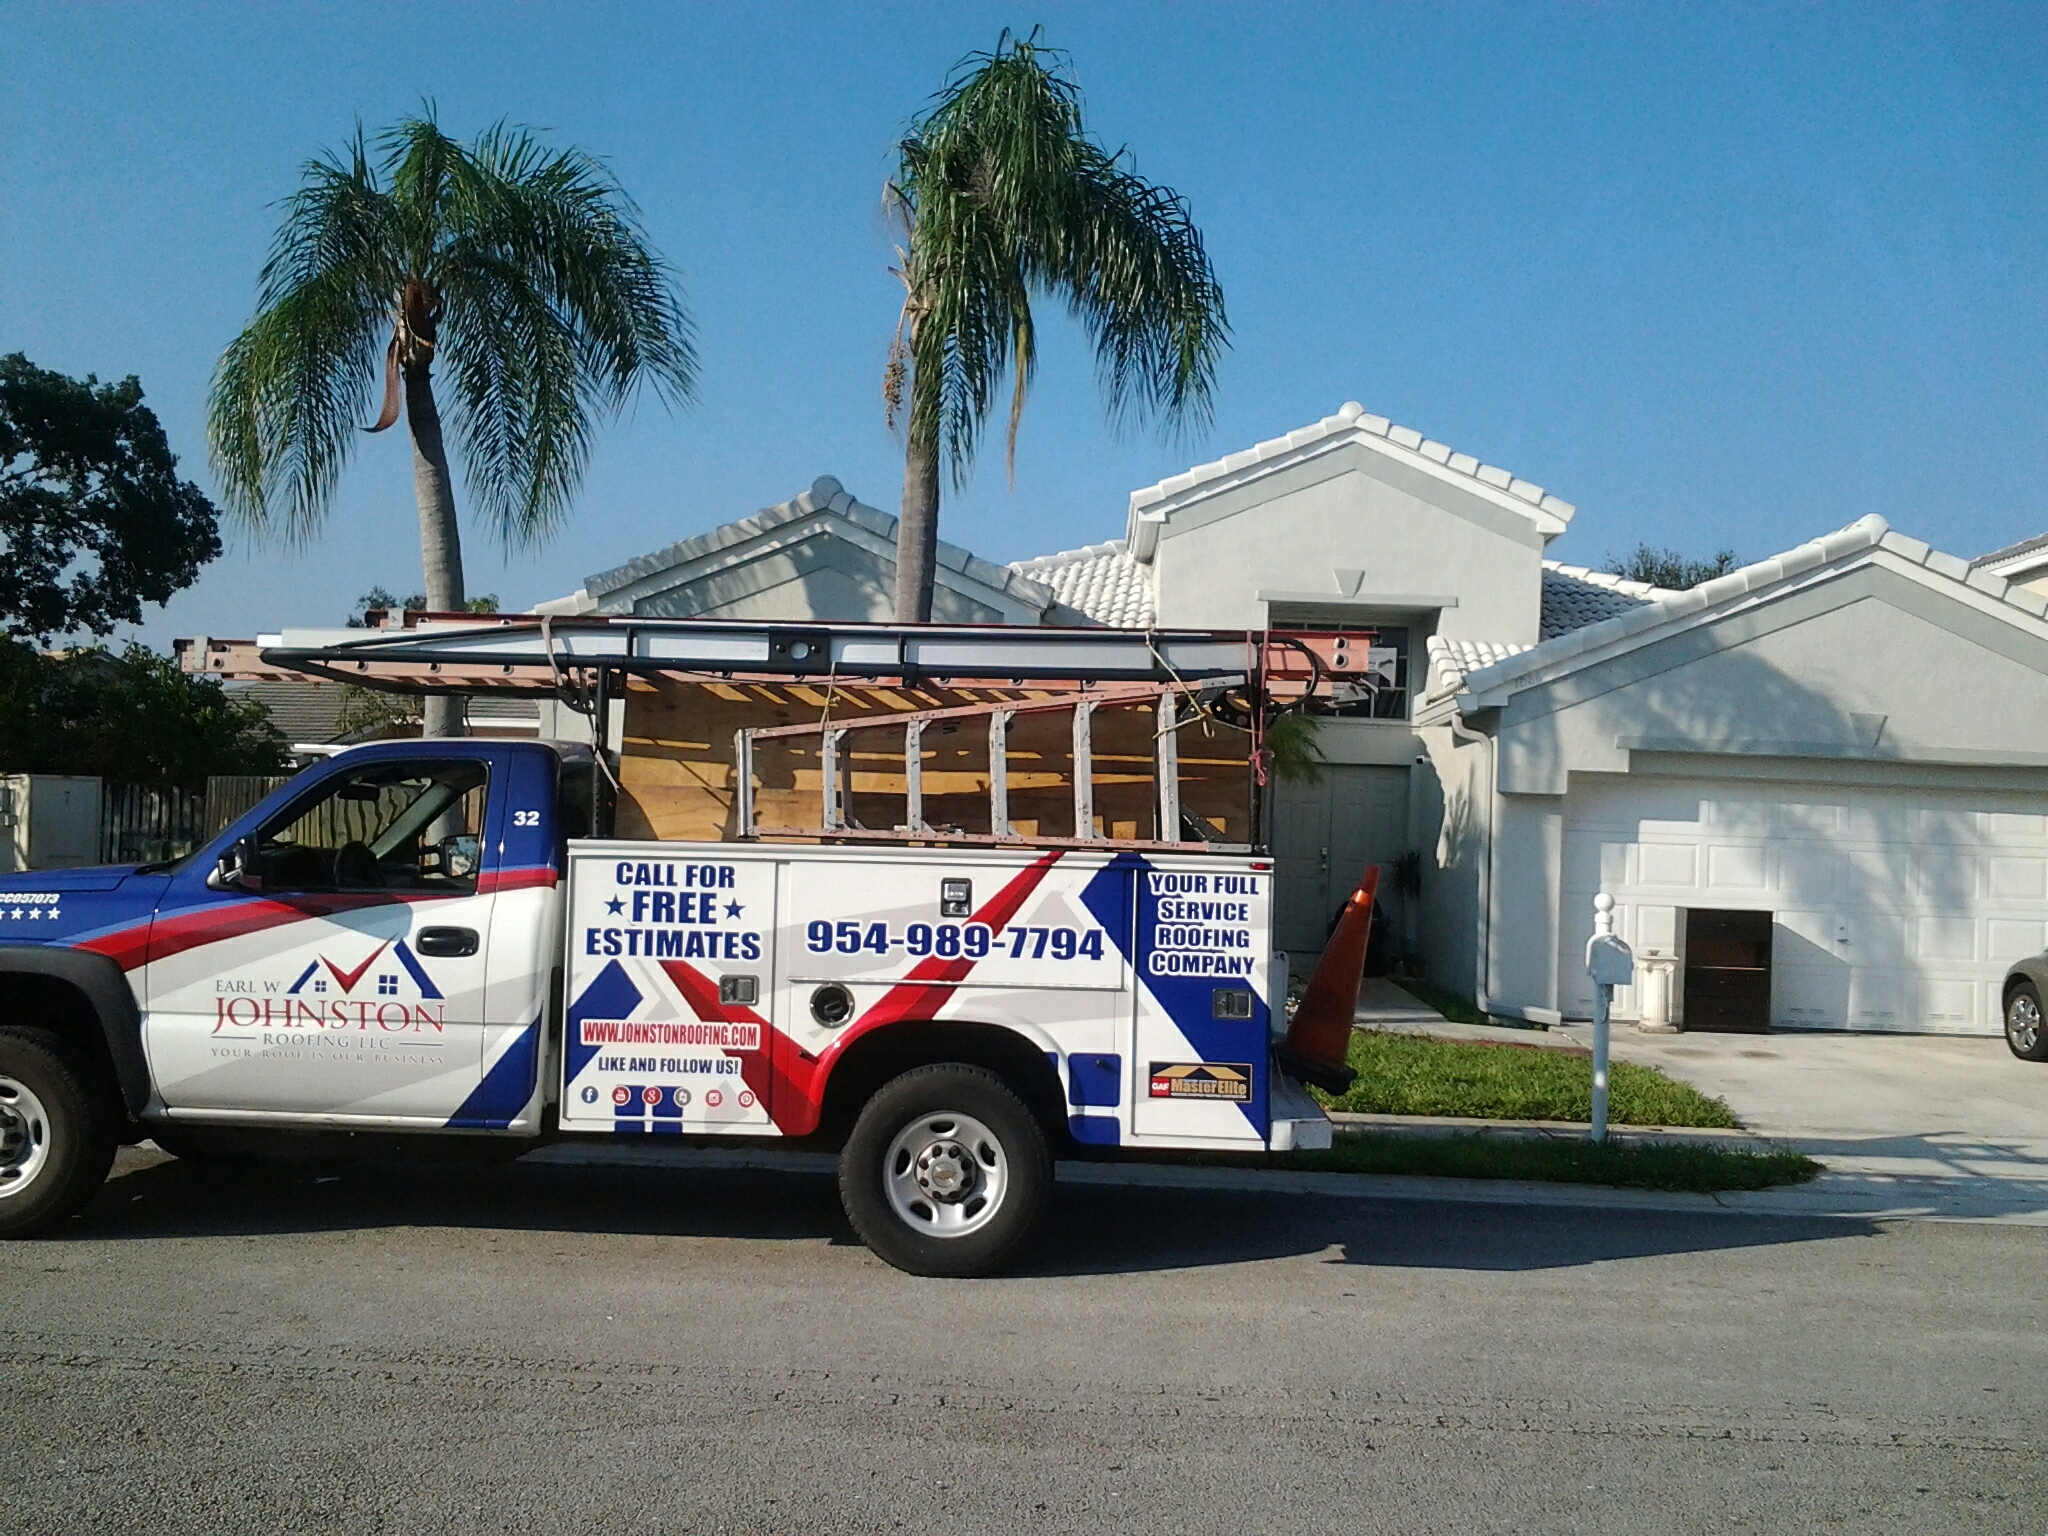 Hollywood, FL - Tile roof repair in the city of pembokre pines fl this repair is being done by Earl w Johnston roofing company Jos? end Duane are you repair technicians